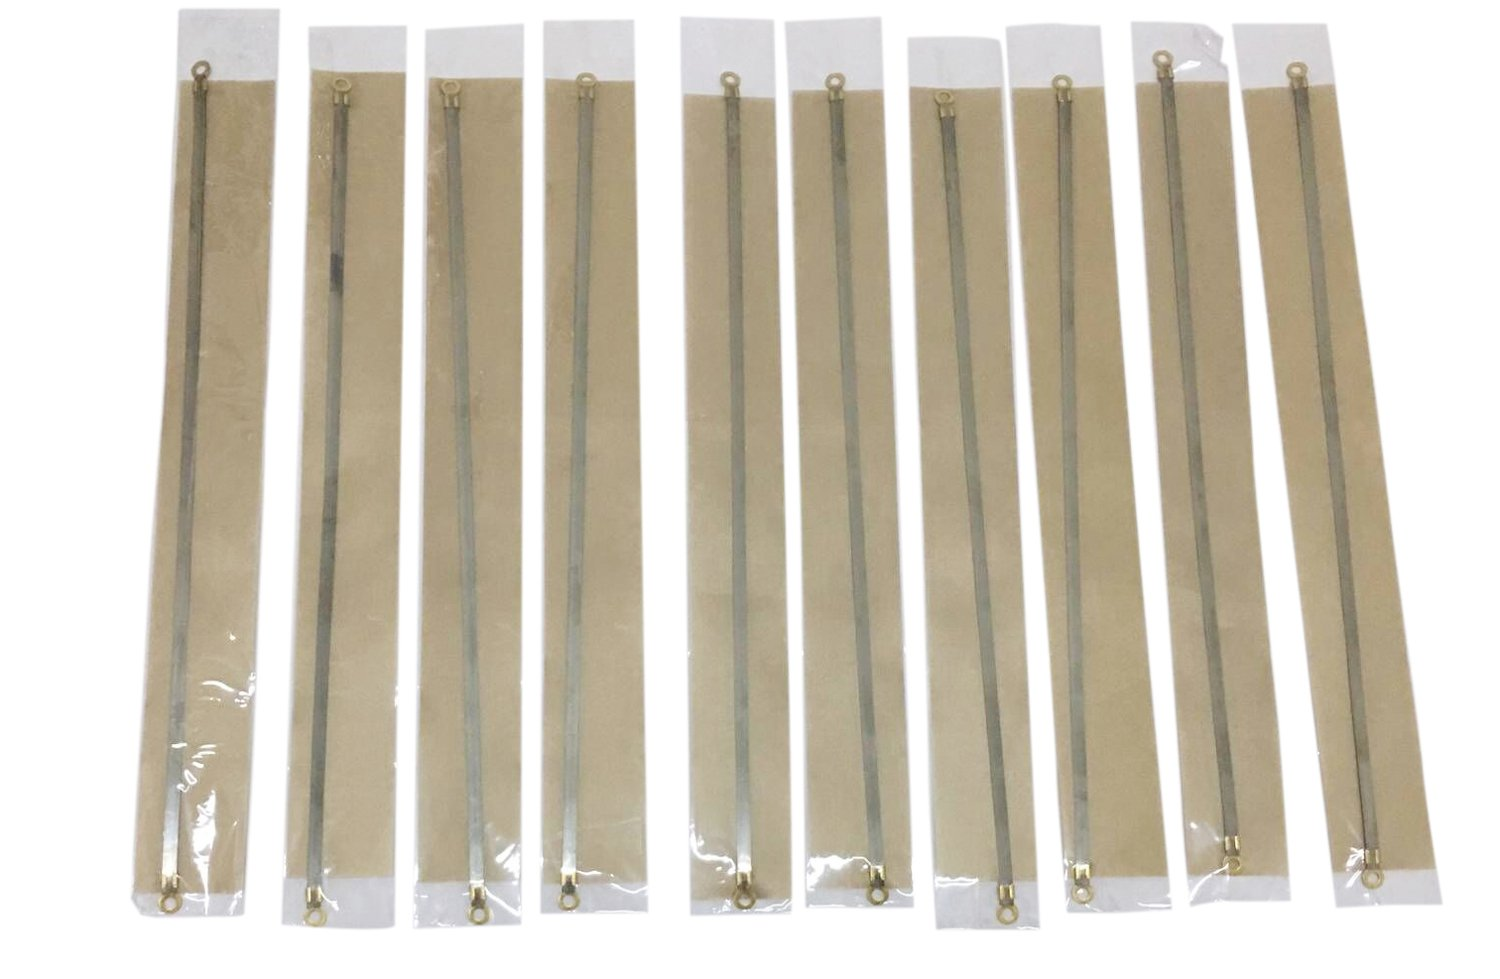 10PCS 12'' Sealer Replacement Element Grip and Teflon Tapes, Impulse Sealer Repair Kits Heat Seal Strips For Most Hand Sealers, Length: 12 inch (300mm), Seal width: 0.2 inch (5mm)